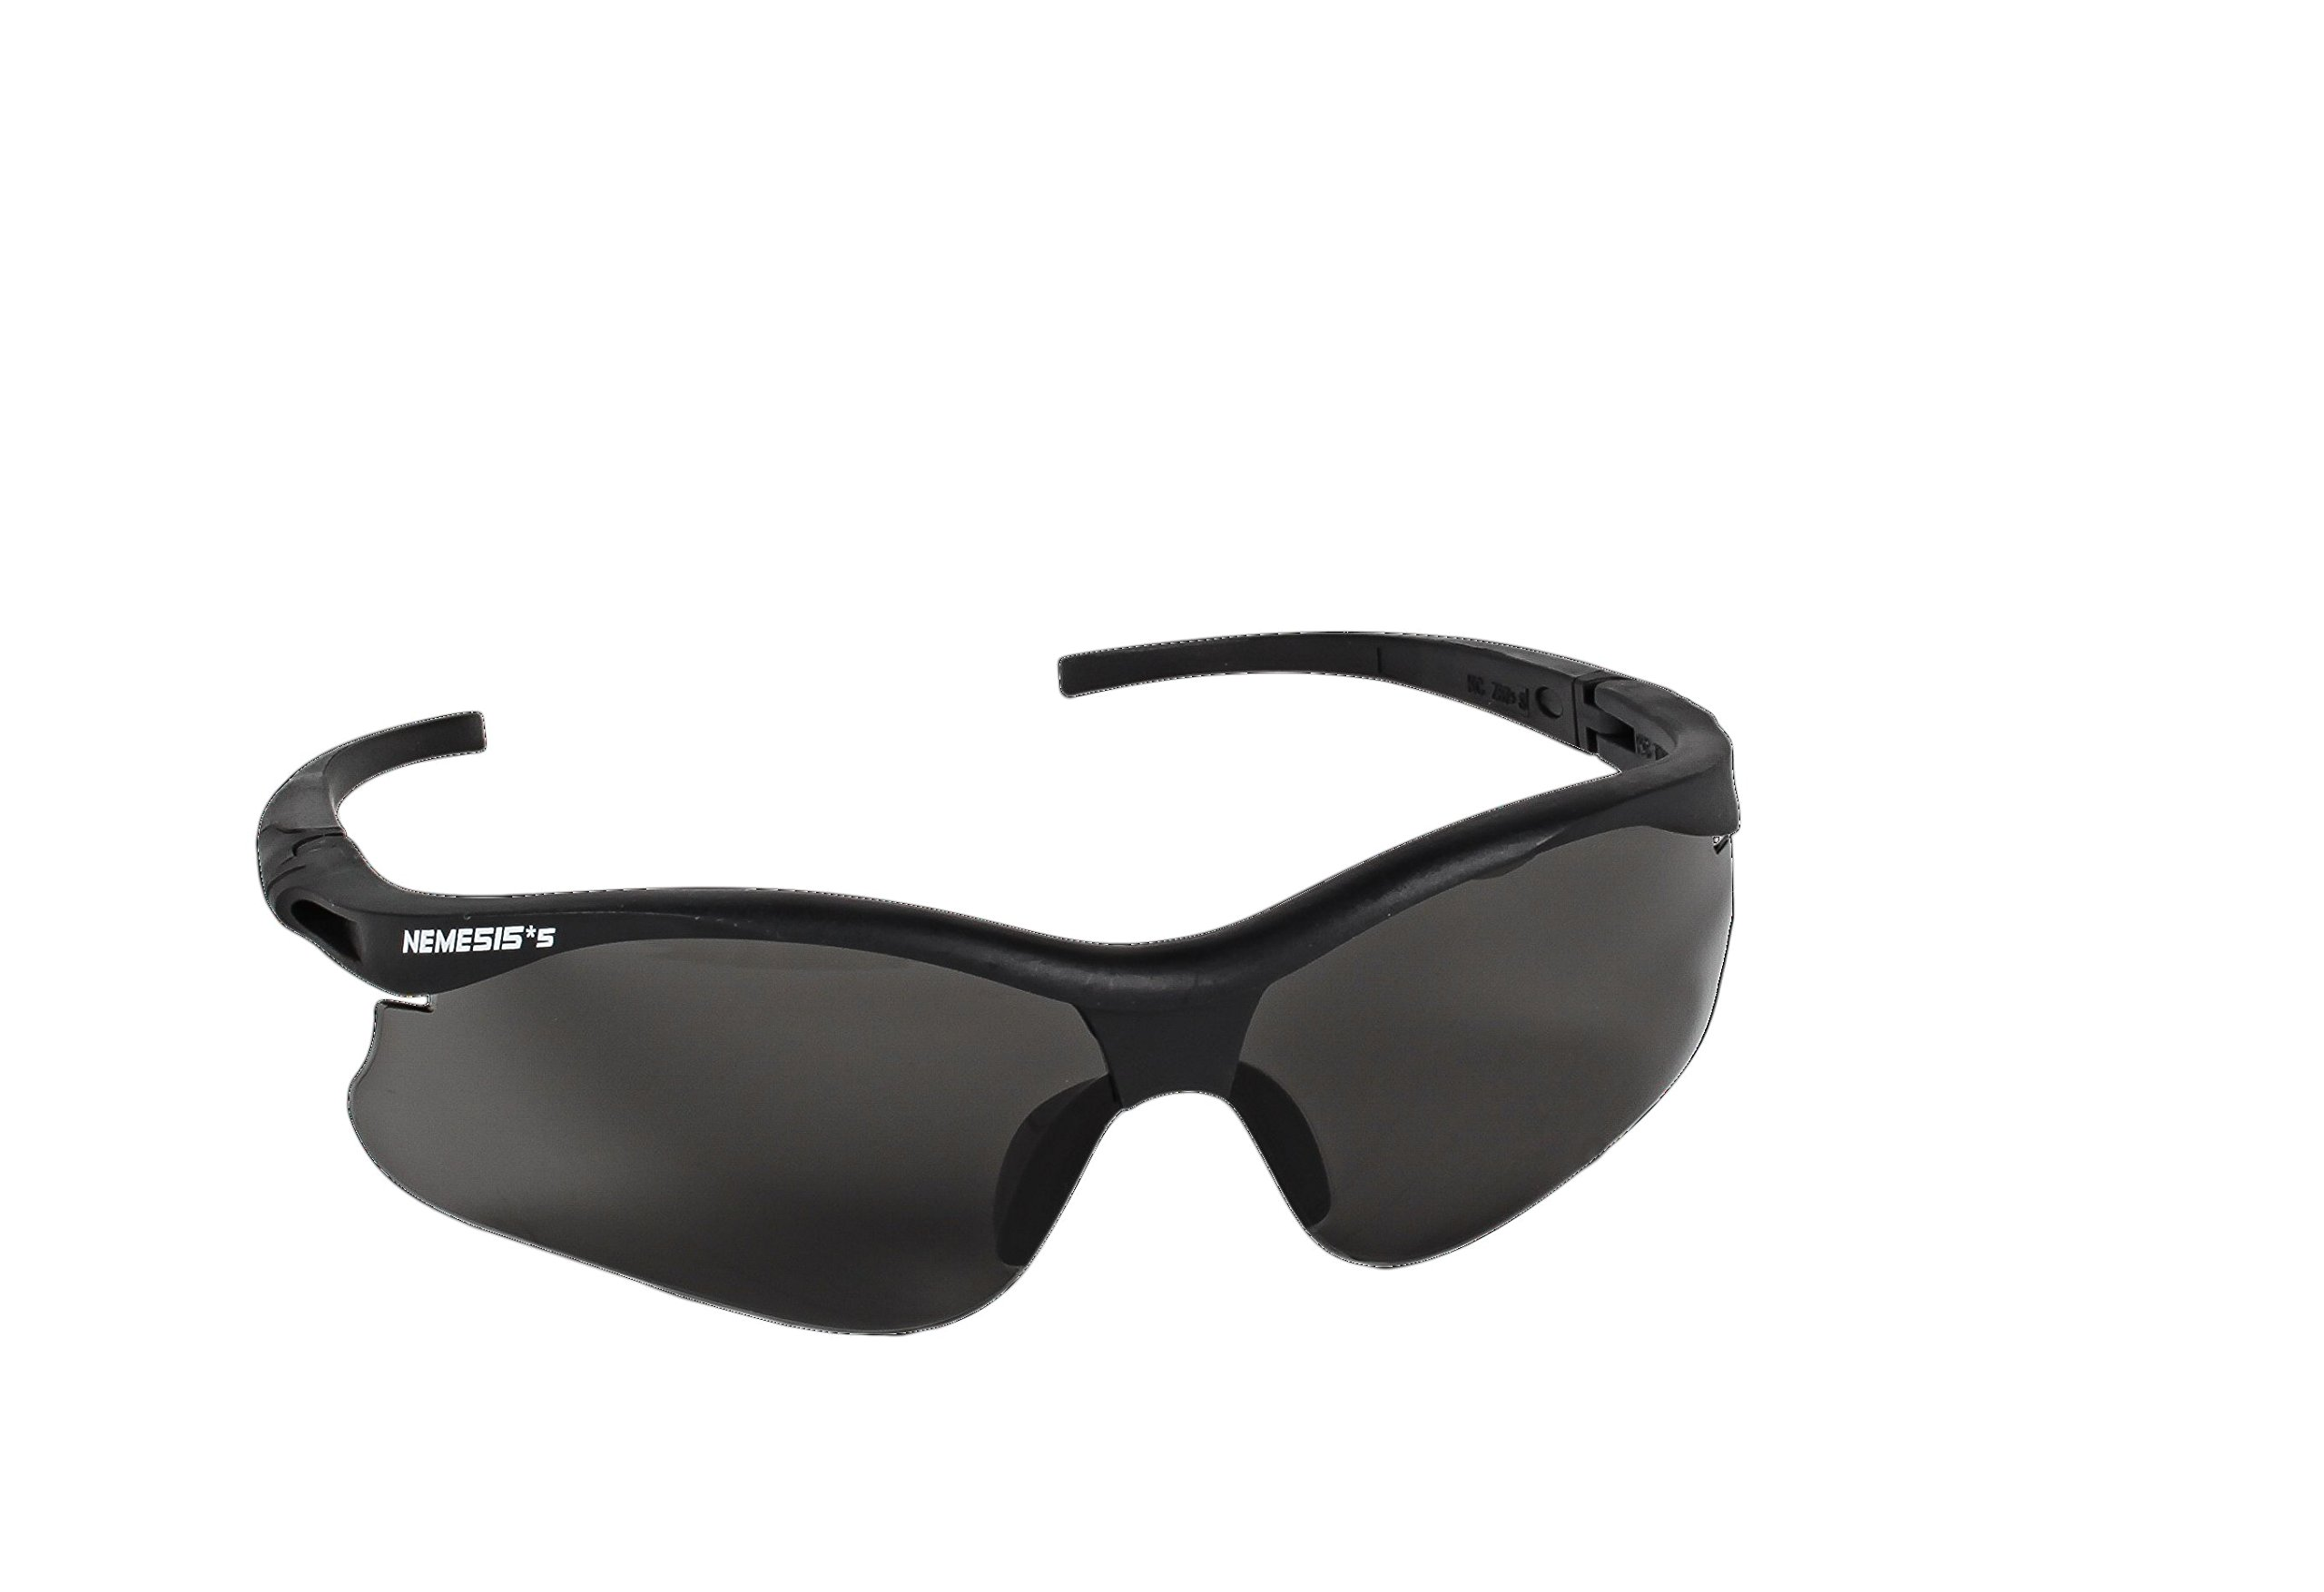 Jackson Safety 38476 V30 Nemesis Small Safety Glasses, Smoke Lenses with Black Frame (Pack of 12) by Kimberly-Clark Professional